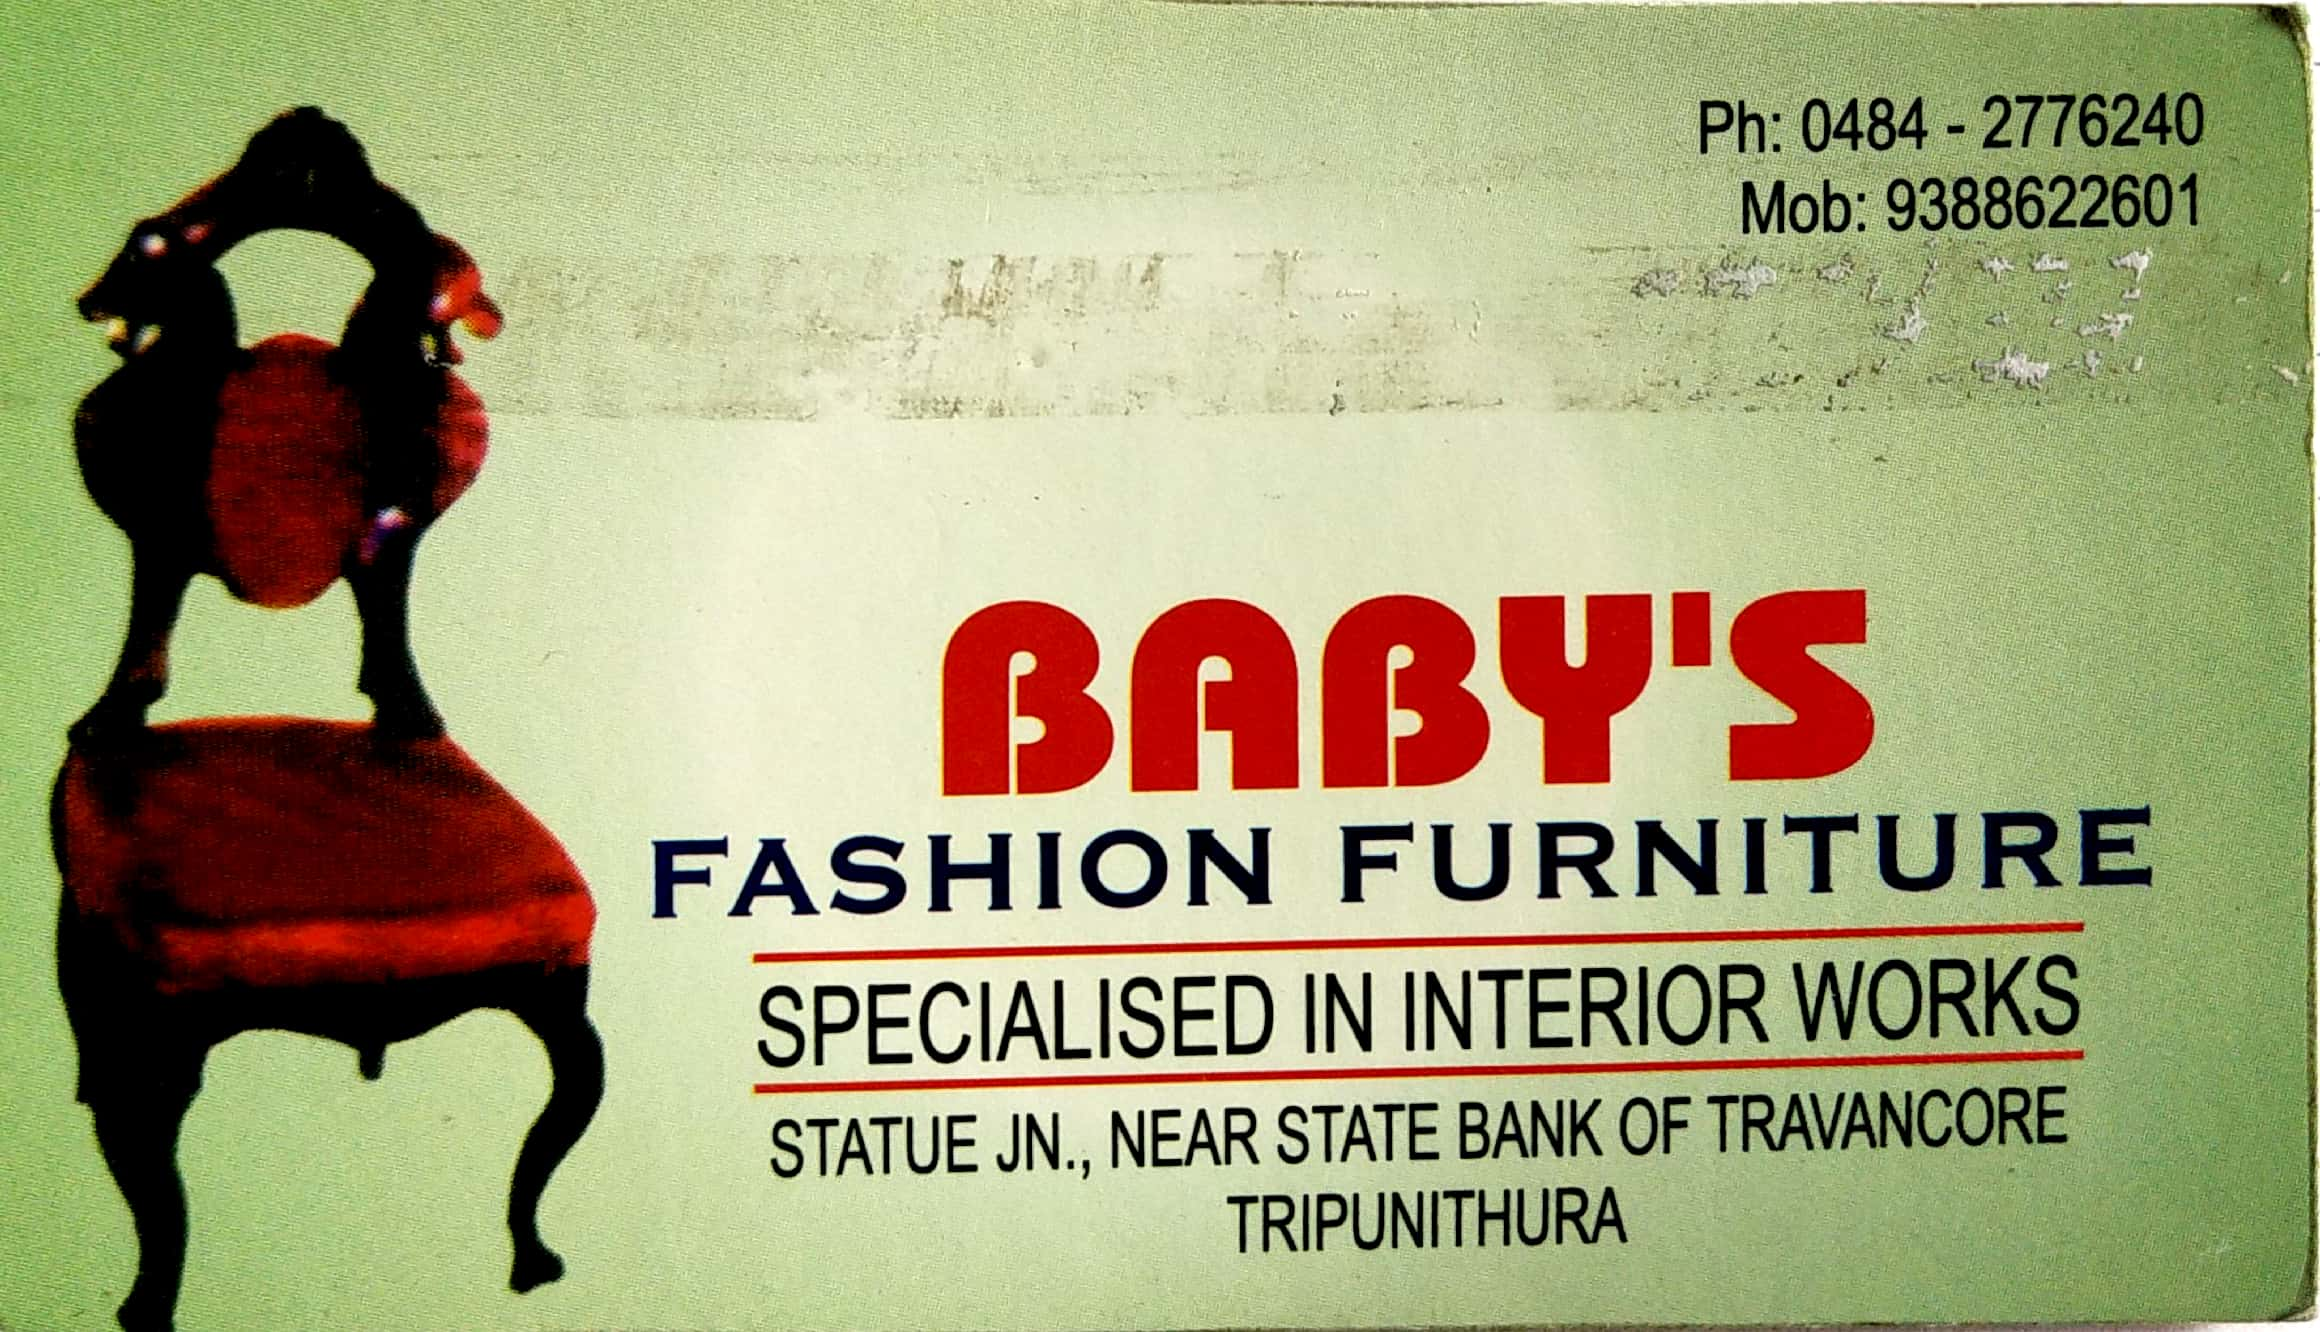 BABY'S Fashion Furniture, FURNITURE SHOP,  service in Thrippunithura, Ernakulam